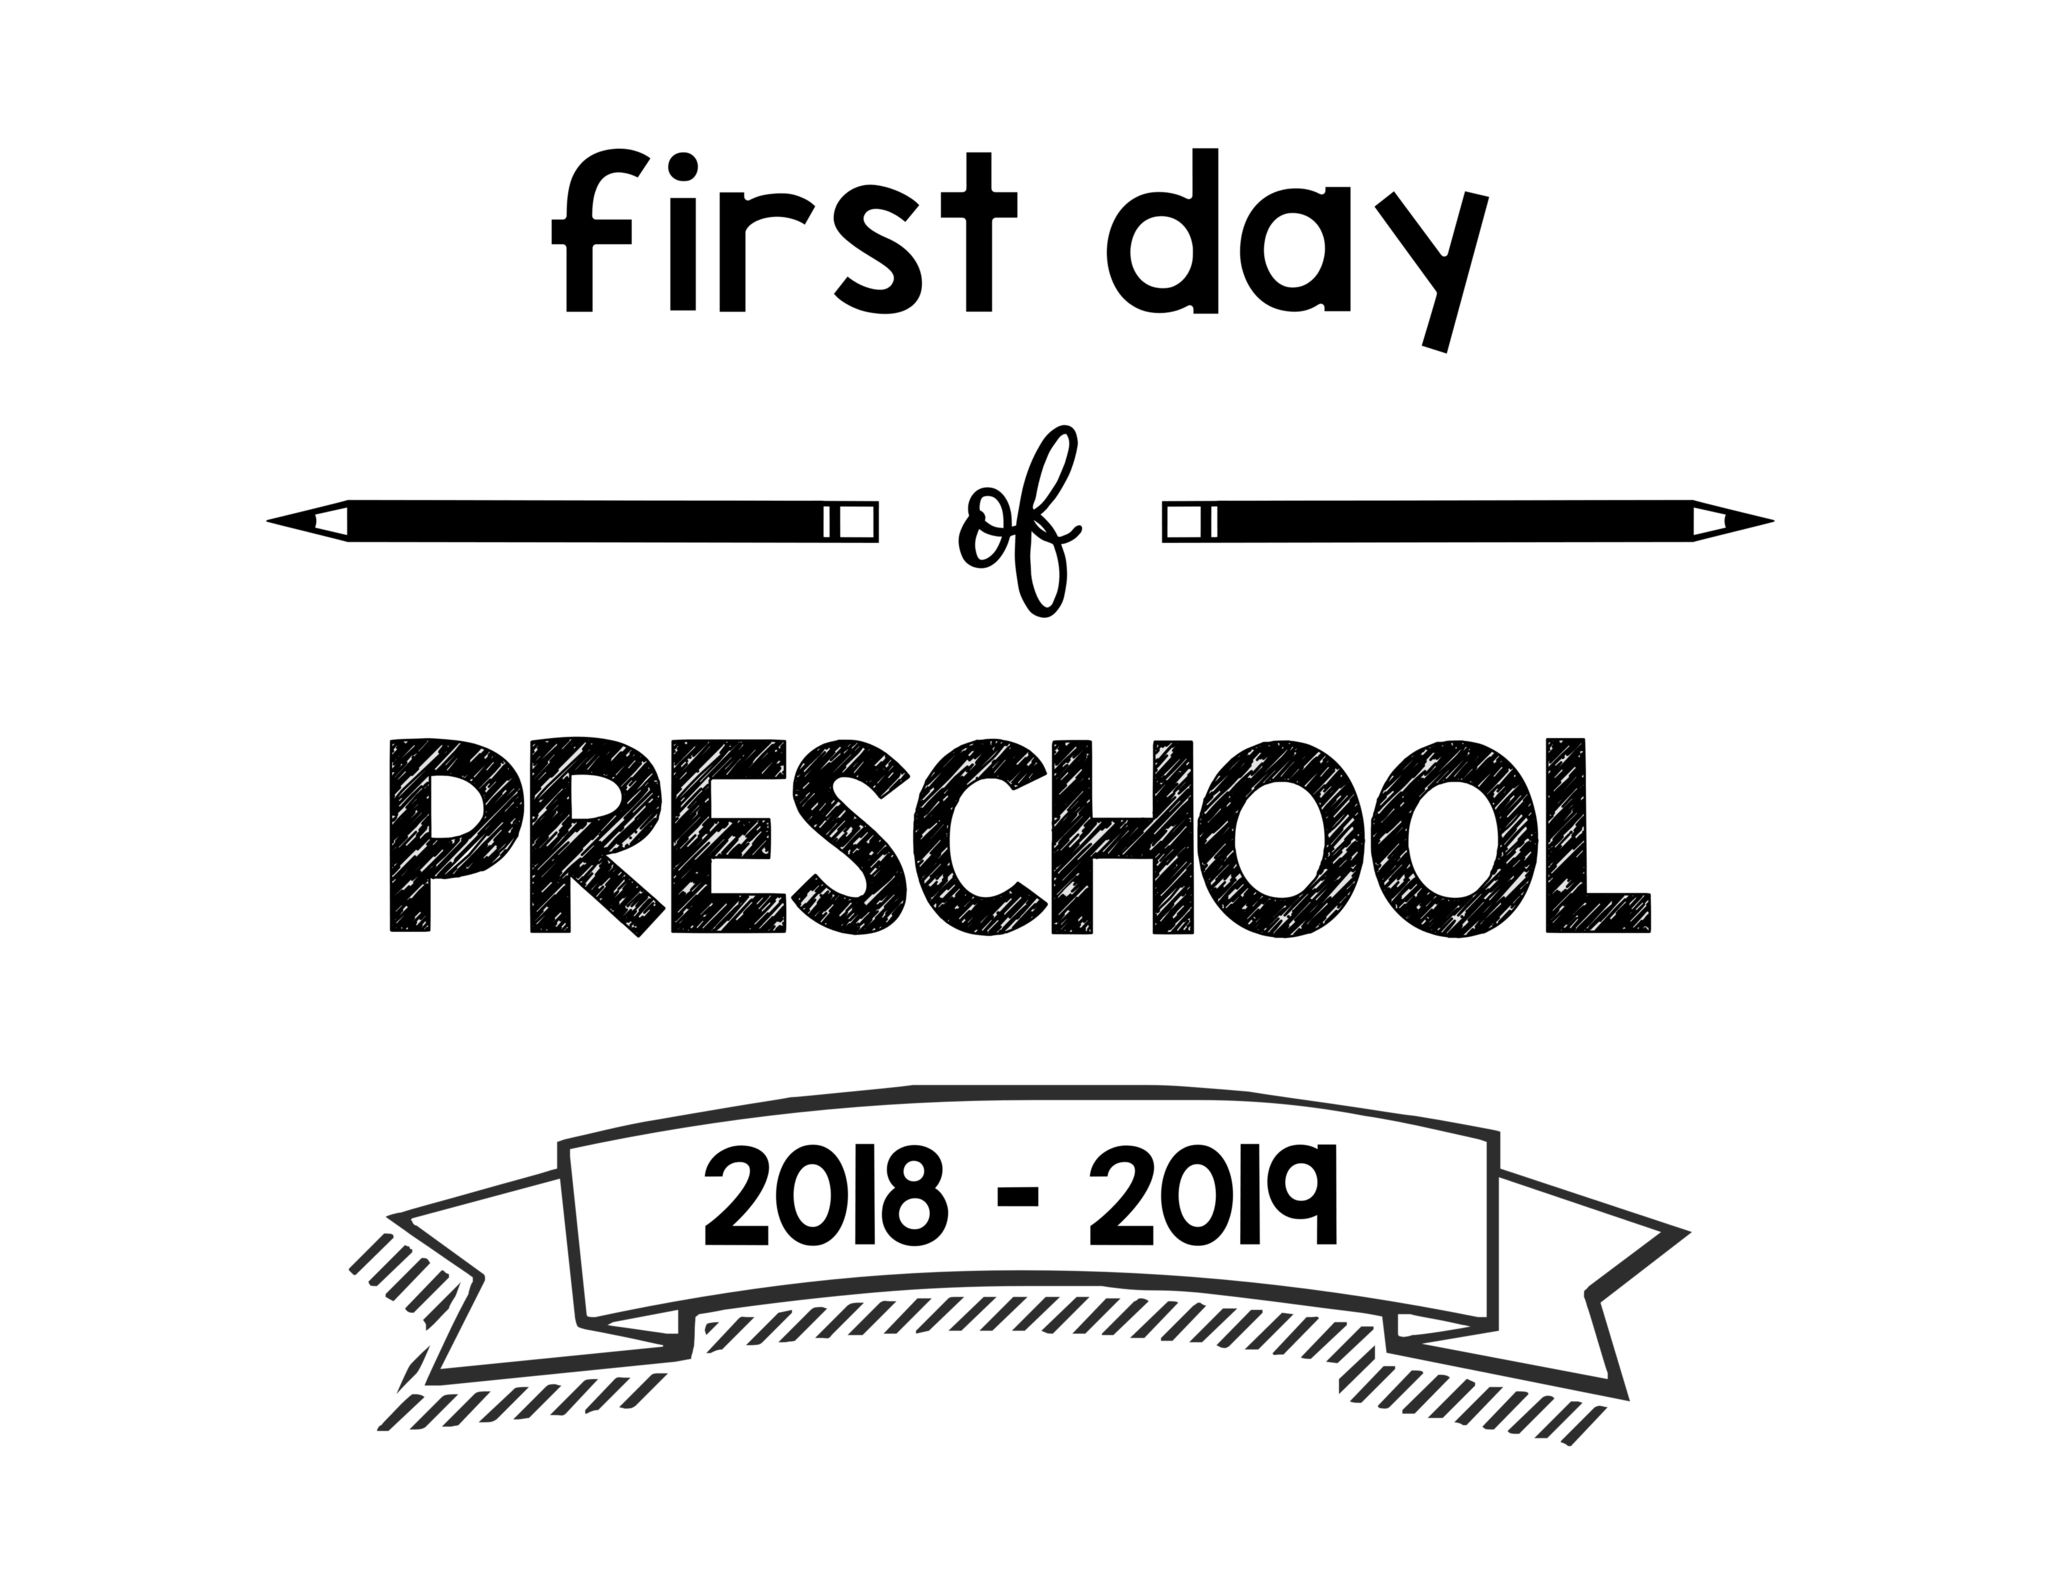 First Day Of School Printable Signs For 2018 2019 School Year South Lumina Style